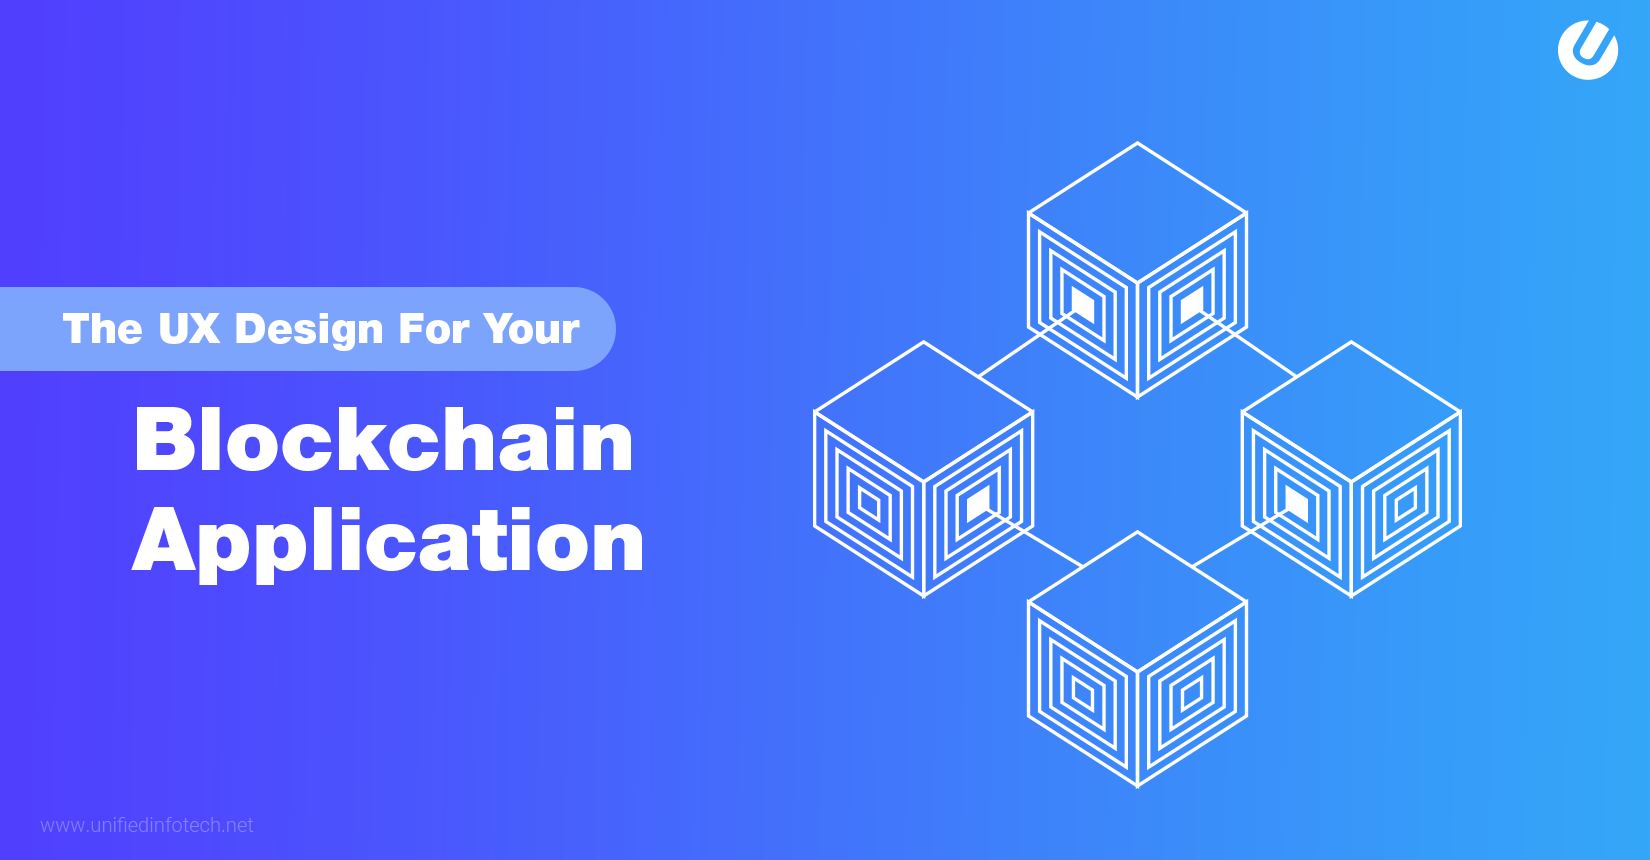 Designing for Blockchain - A UX Staregy for Better Application Design